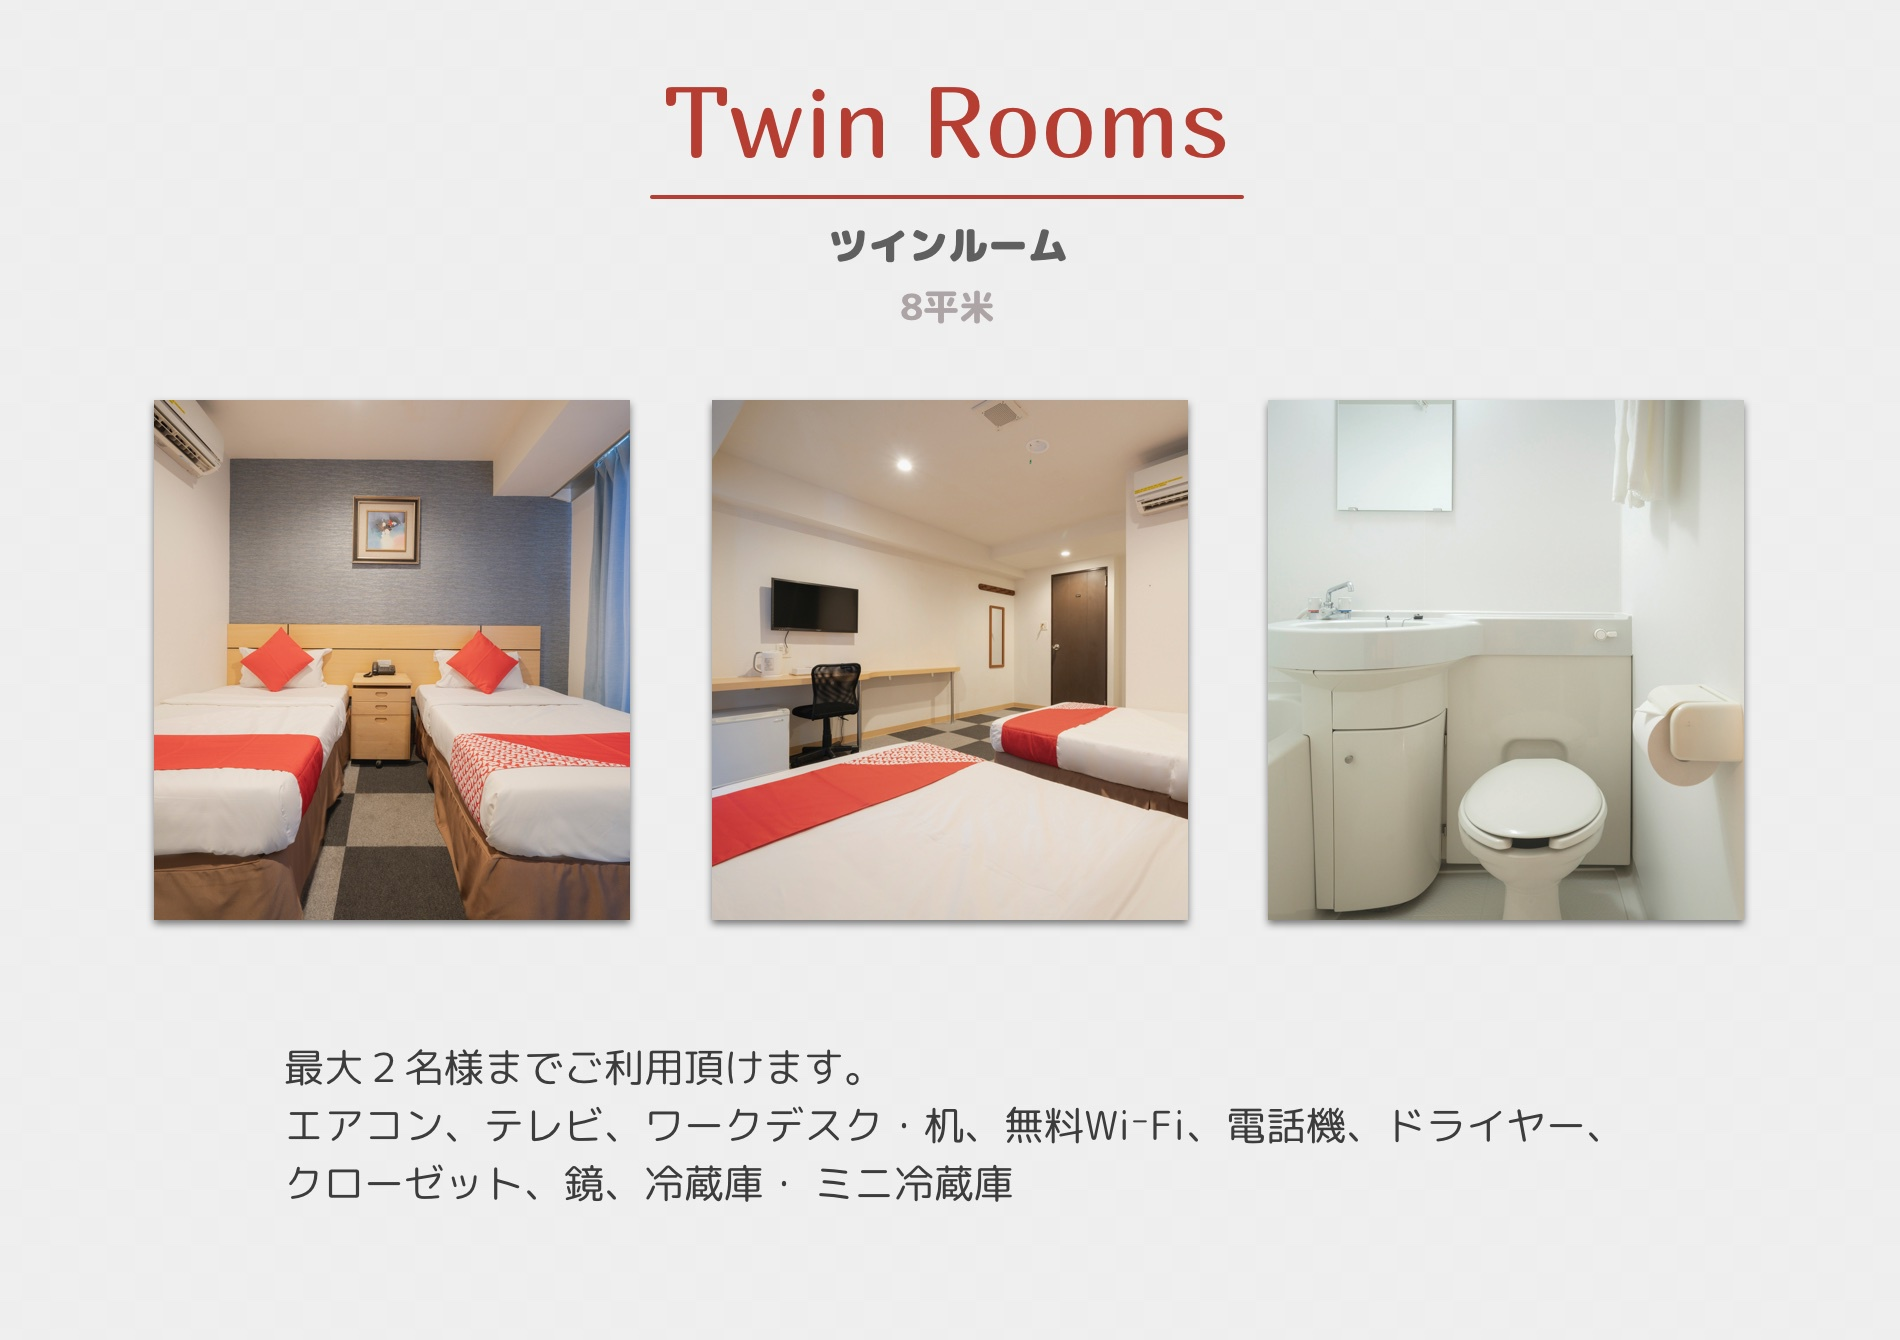 semidouble rooms